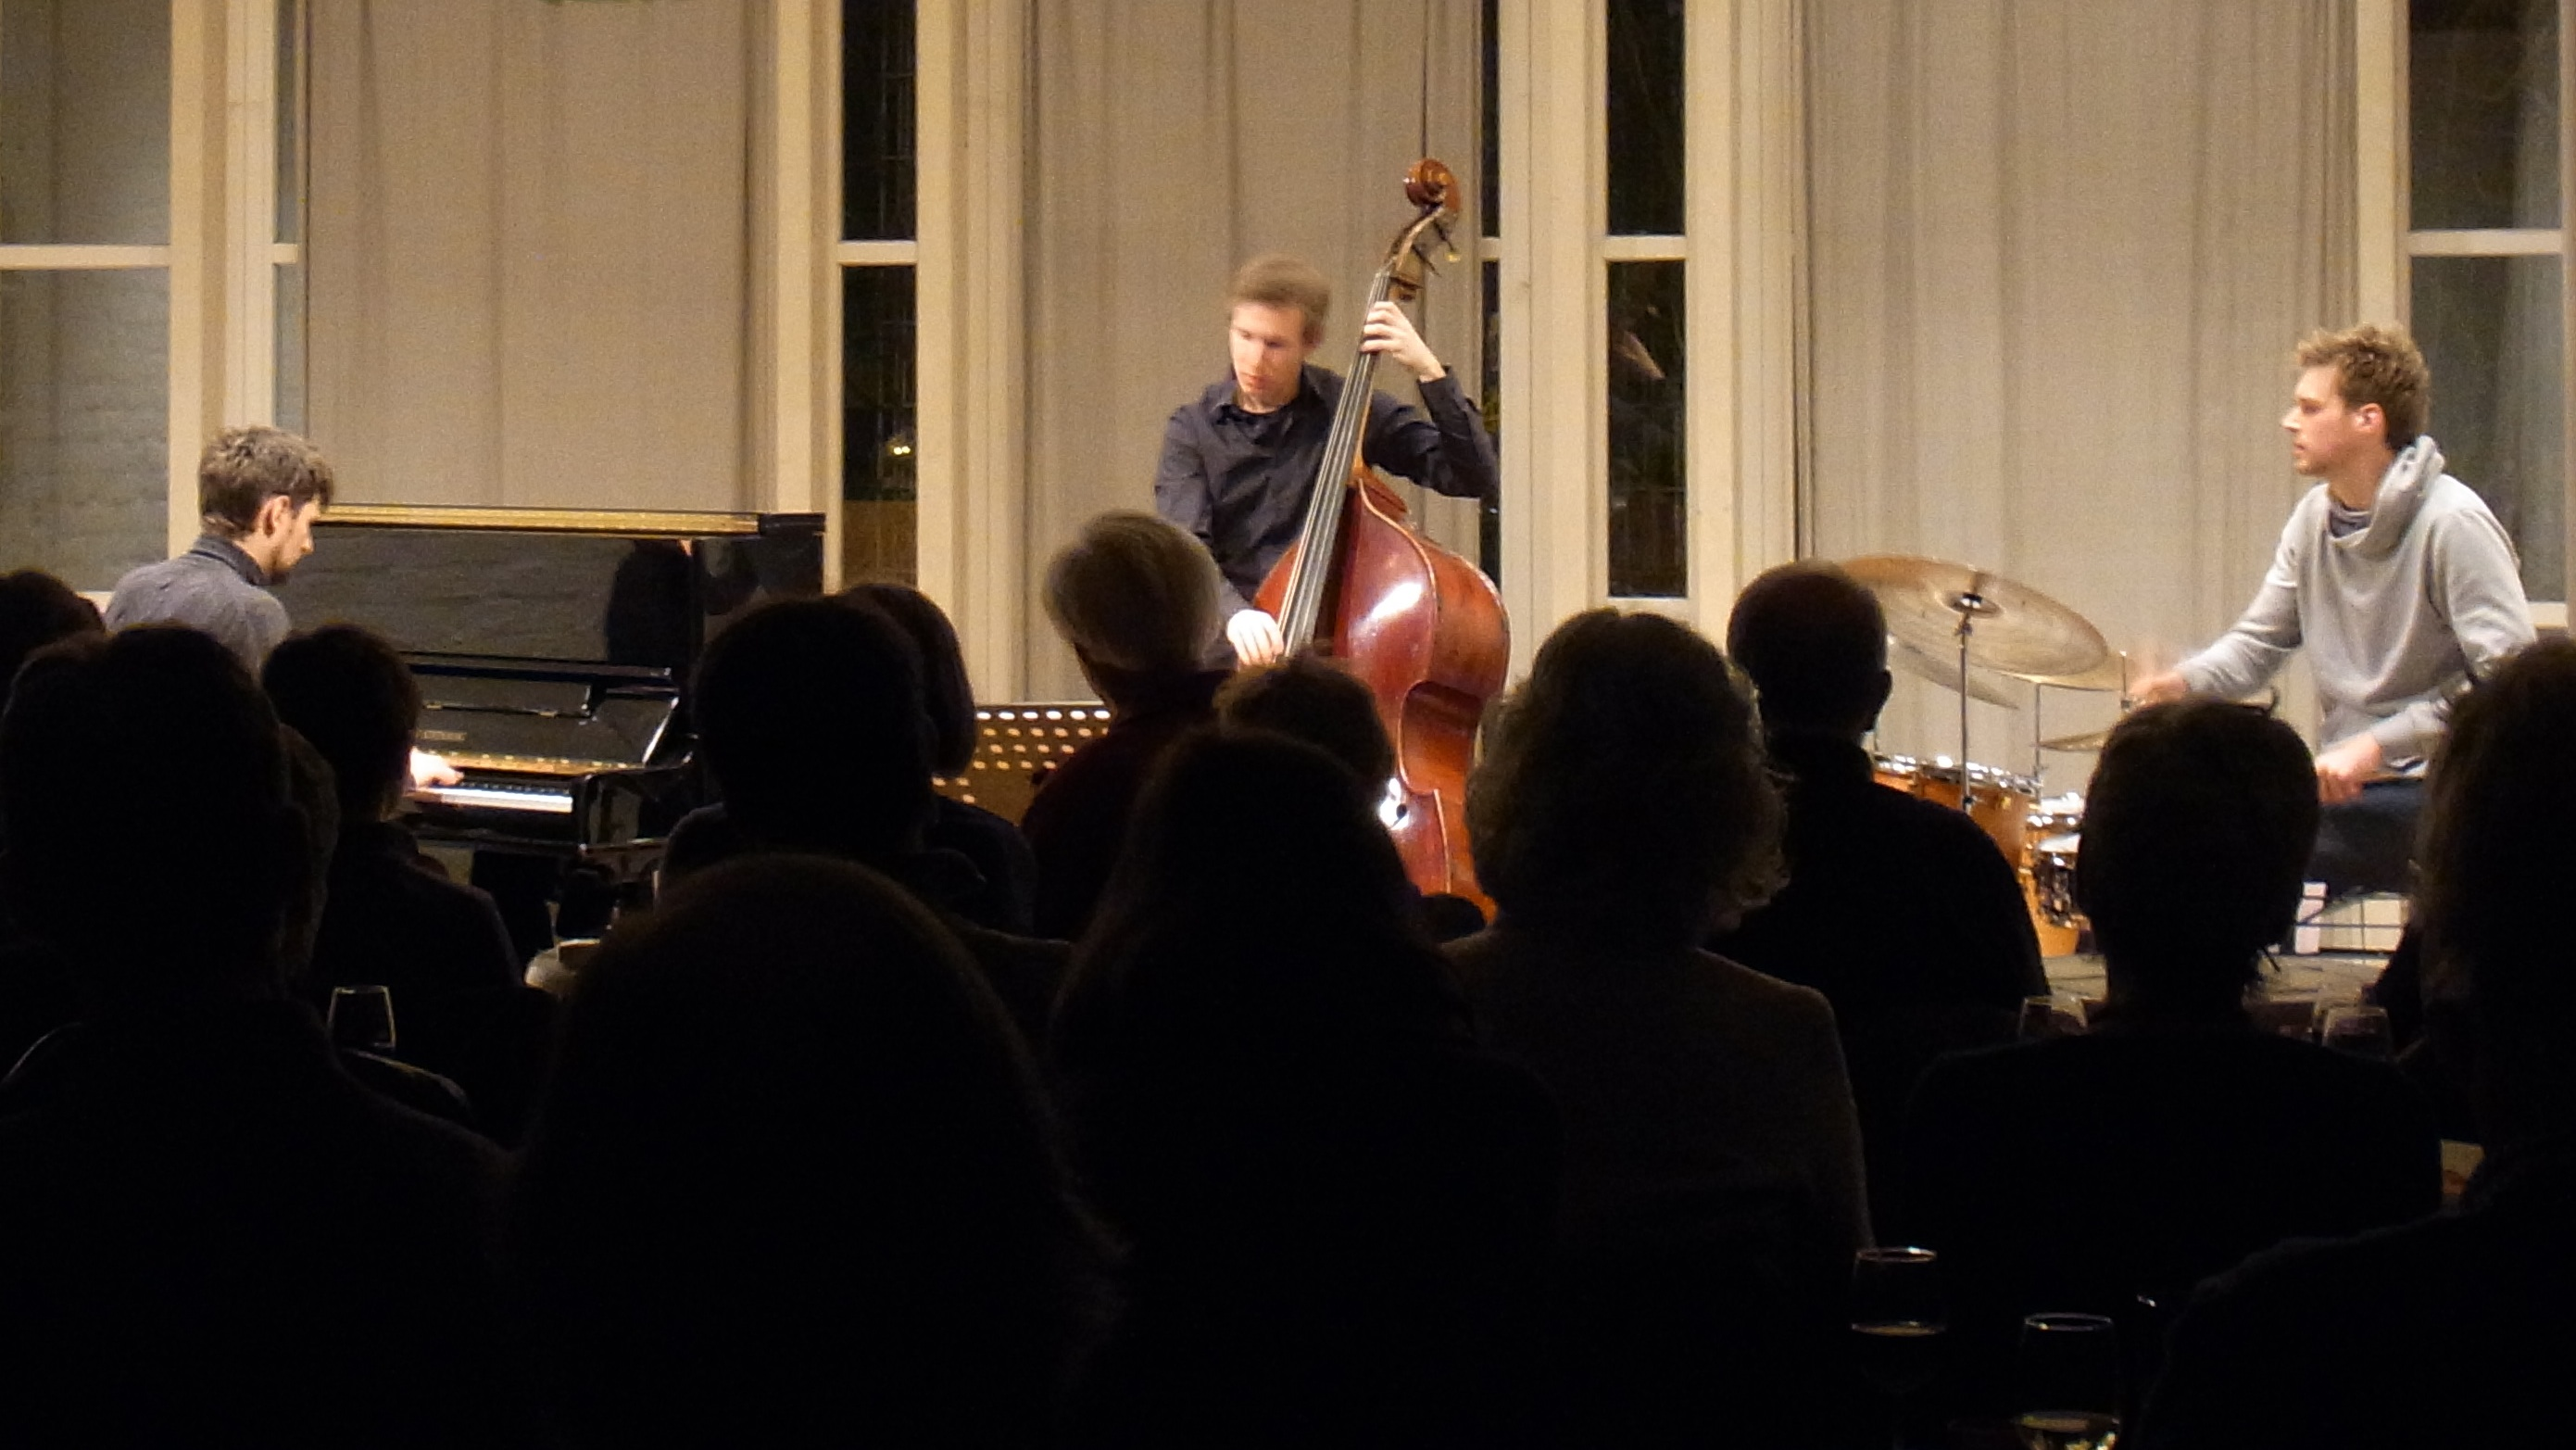 Stephan Becker Trio - Bad Oldesloe